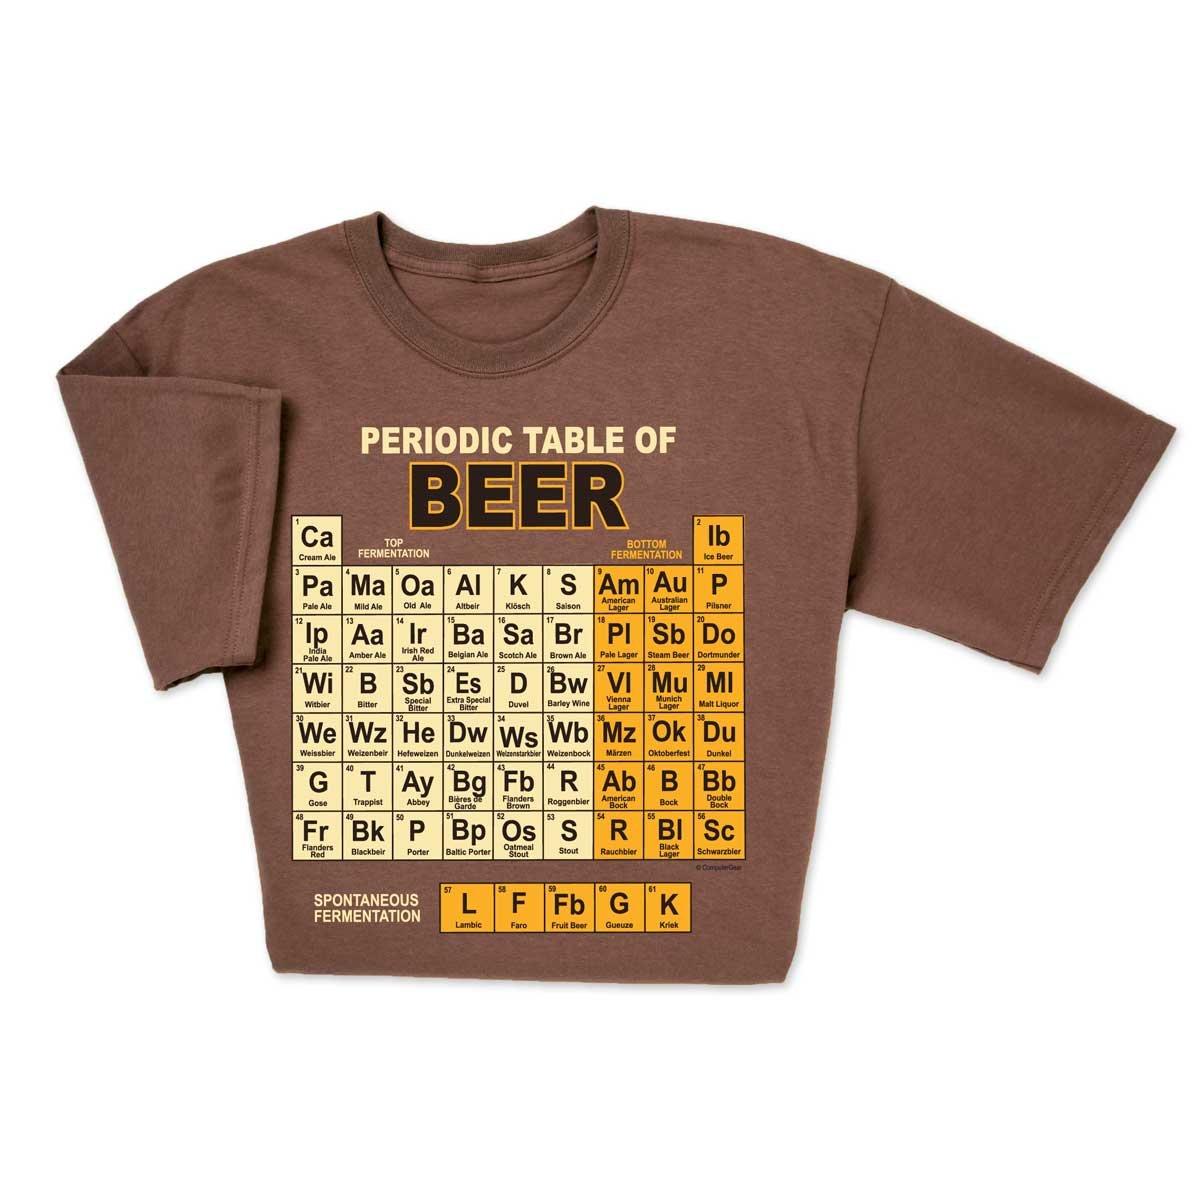 30ebd1f2f2 Funny Beeriodic Table of Beer tshirt features world famous beers from the  lightest ales to the heaviest schwarzbier arranged as a chemistry periodic  table ...